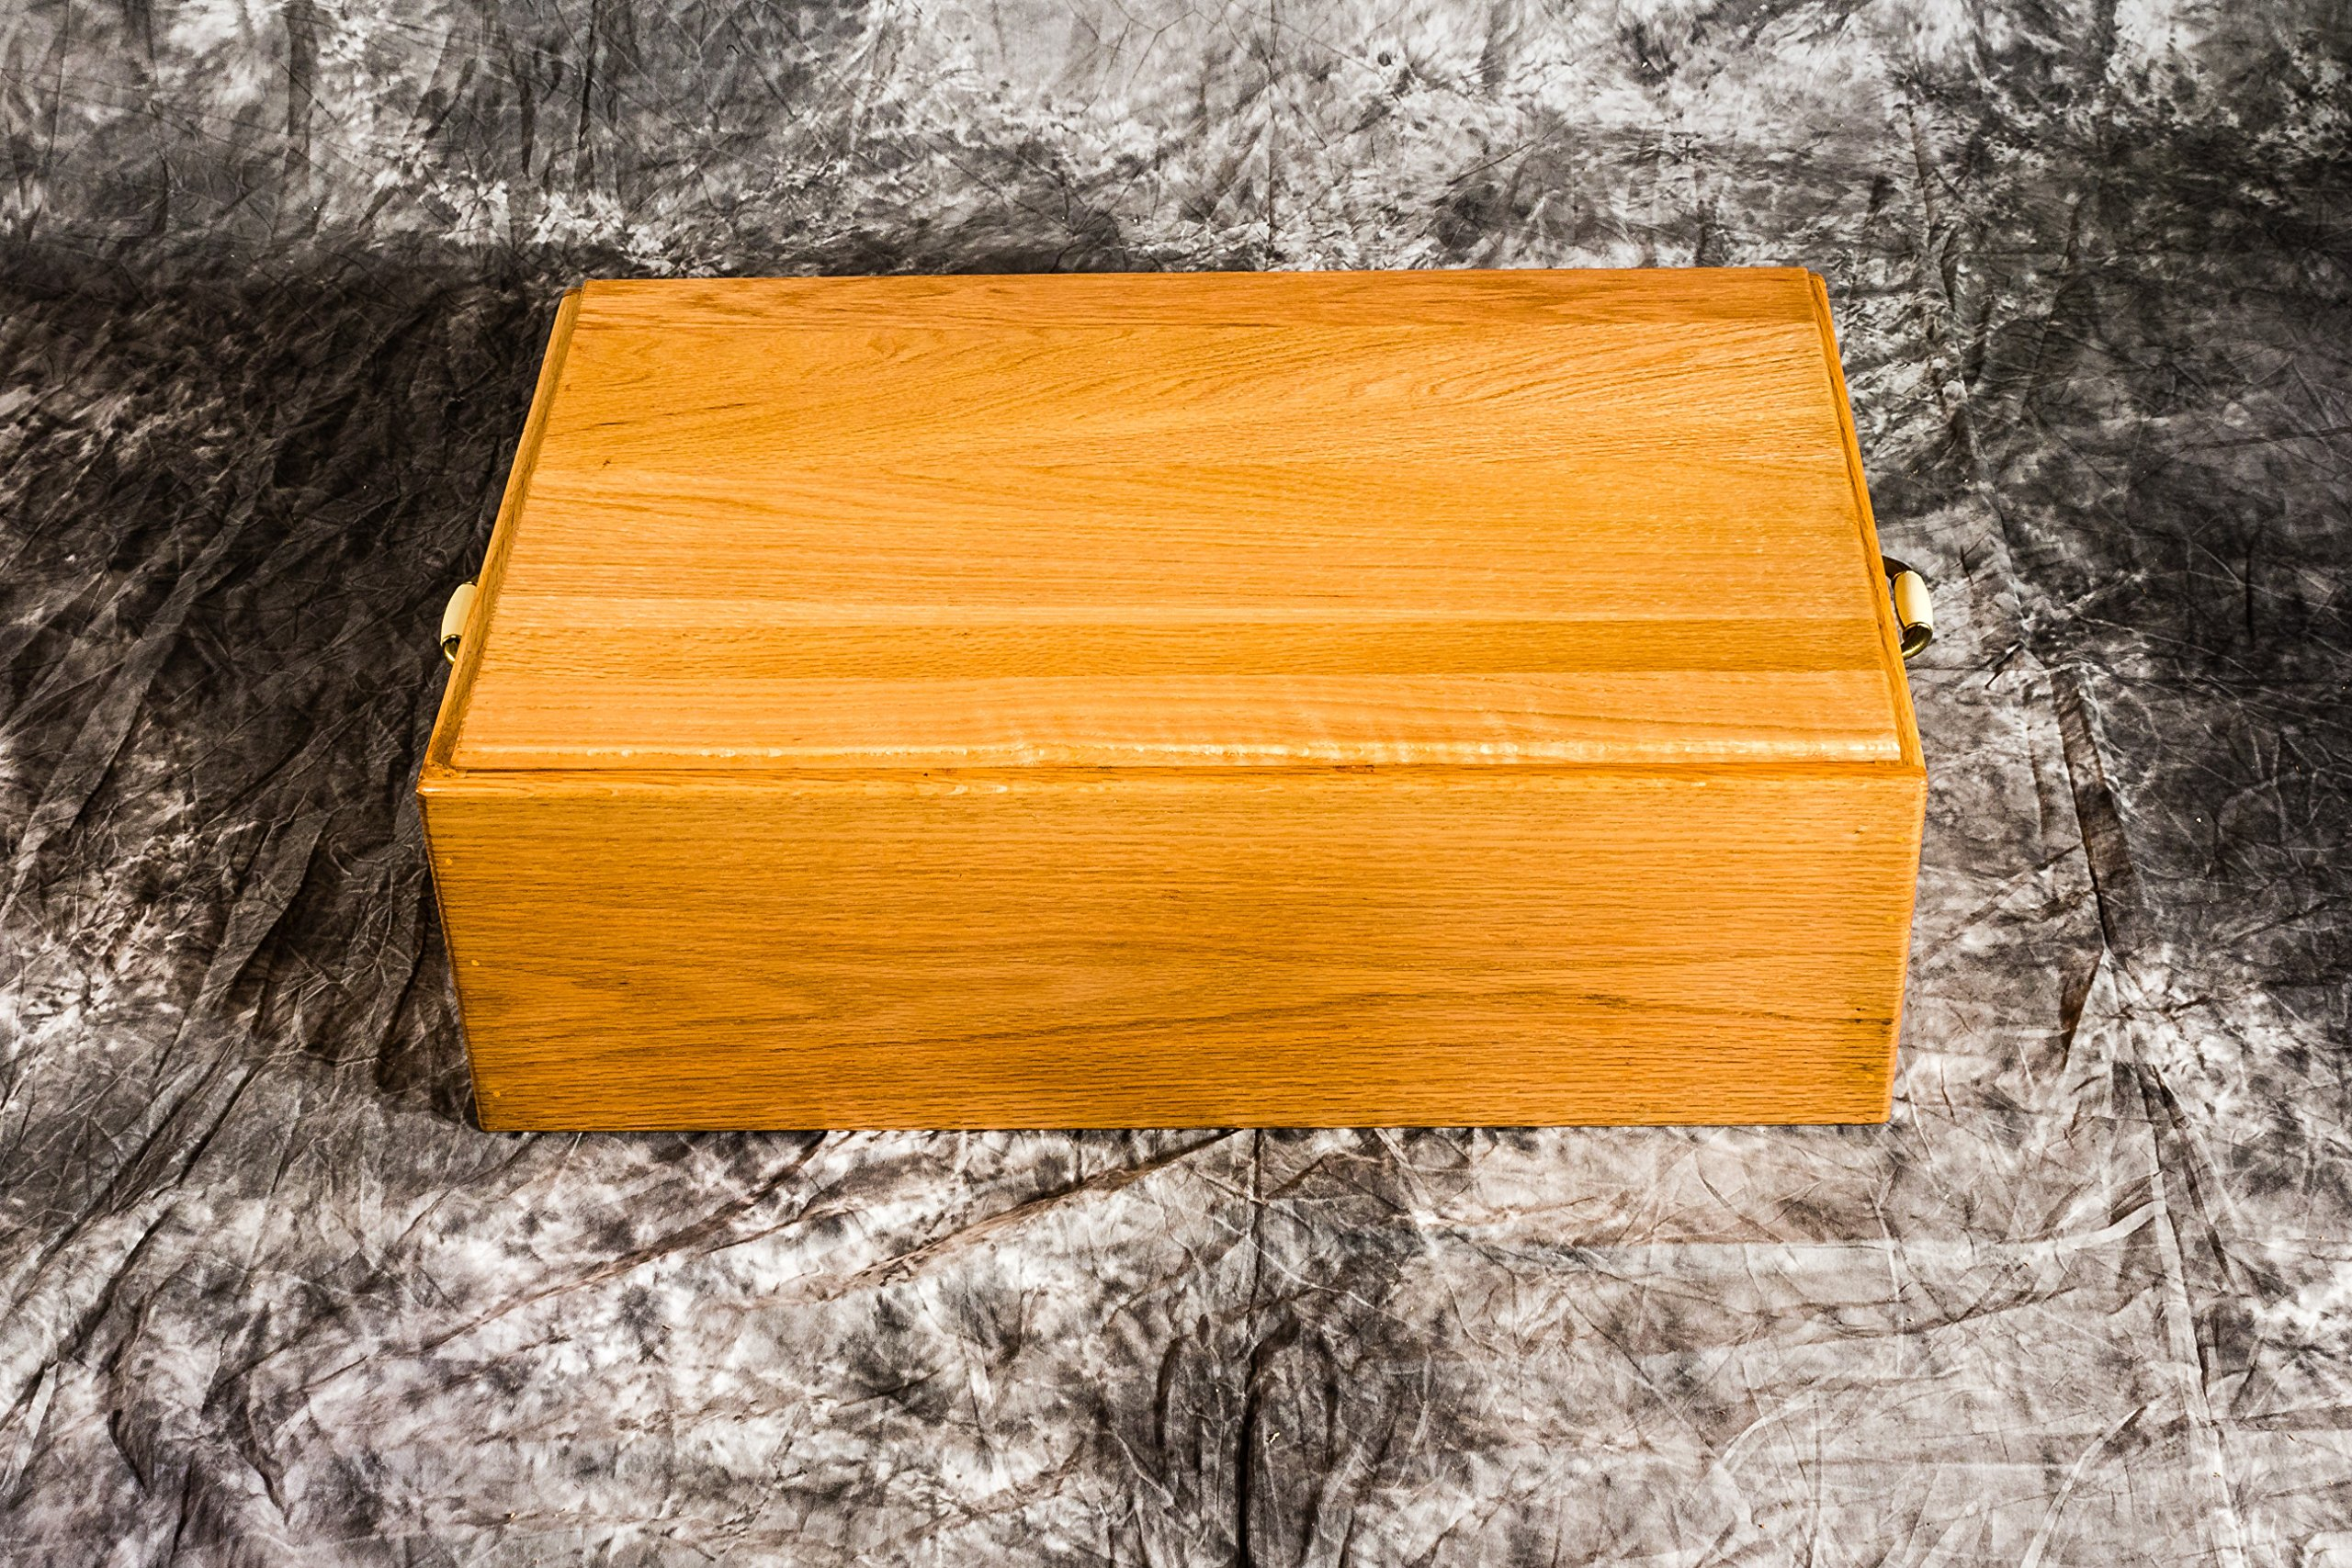 Pet Casket For Dogs- Wooden Burial Coffin for Dogs and Cats - Wood Dog Burial Box Handmade by Amish Craftsman - 24'' Medium Pinnacle Woodcraft by Pinnacle Woodcraft